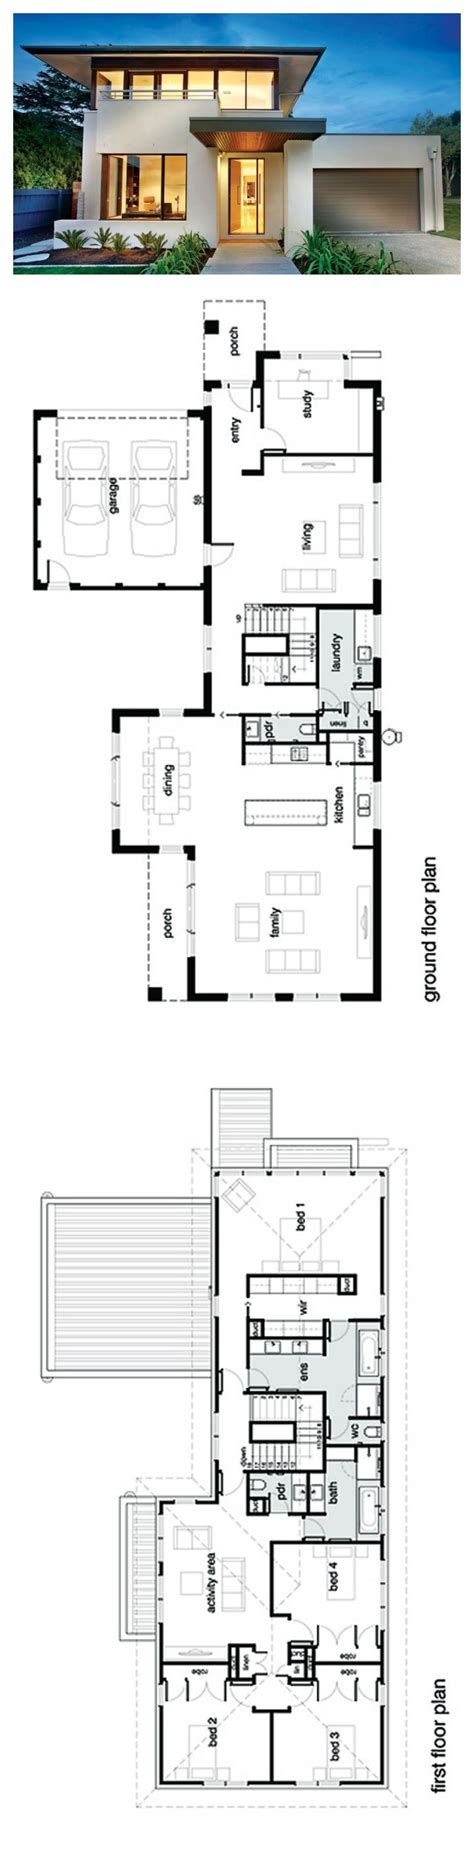 floor plan of modern family house the 25 best ideas about modern house plans on pinterest